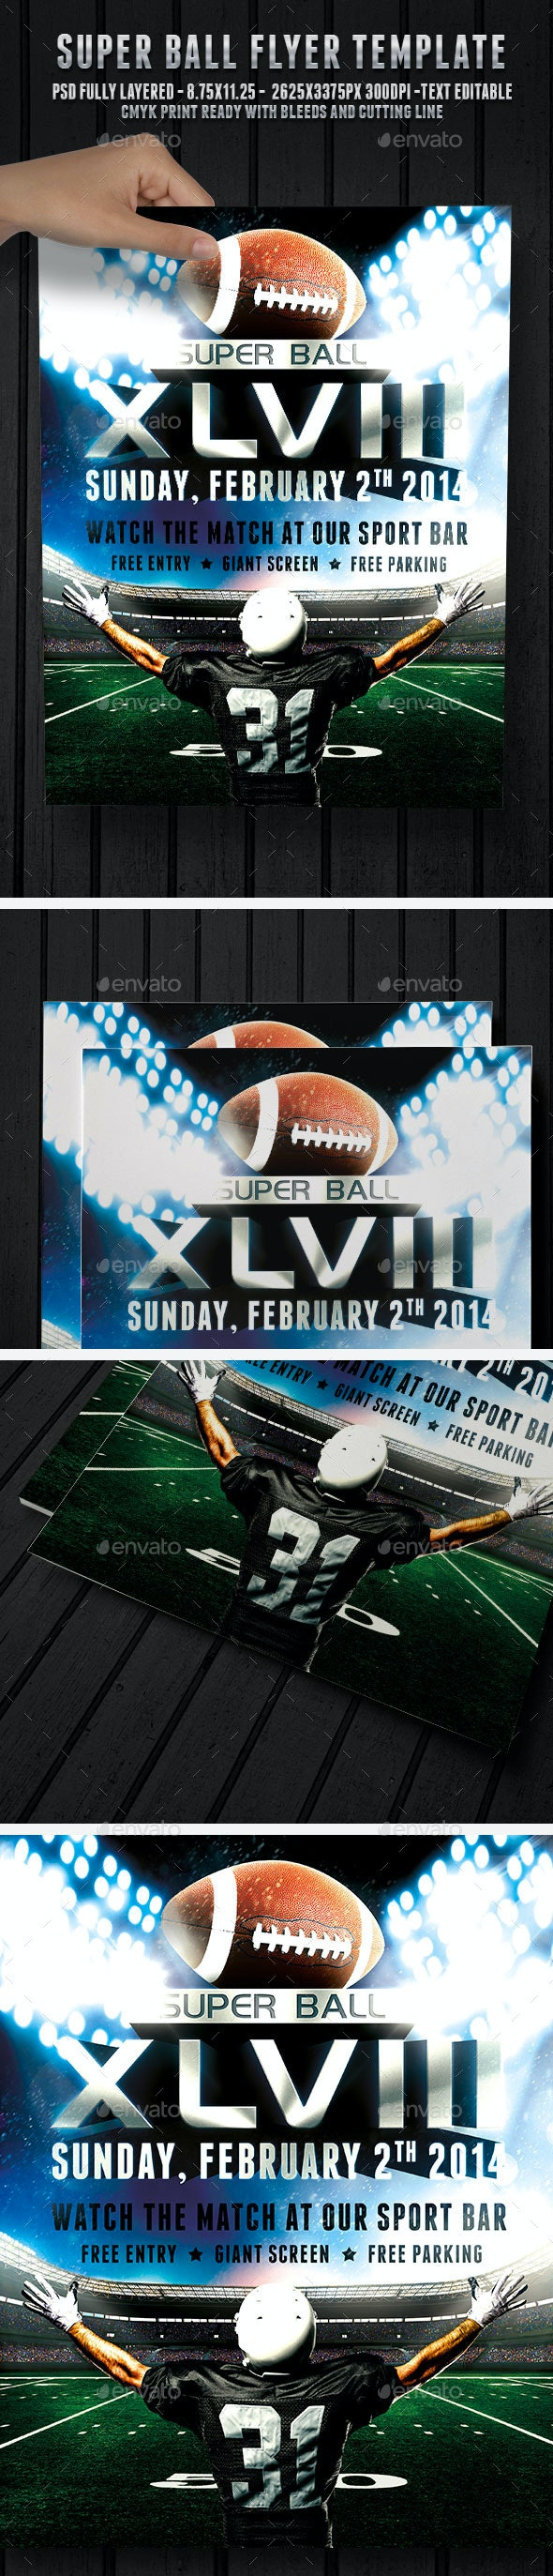 Super Ball Football - Flyer Template - Sports Events